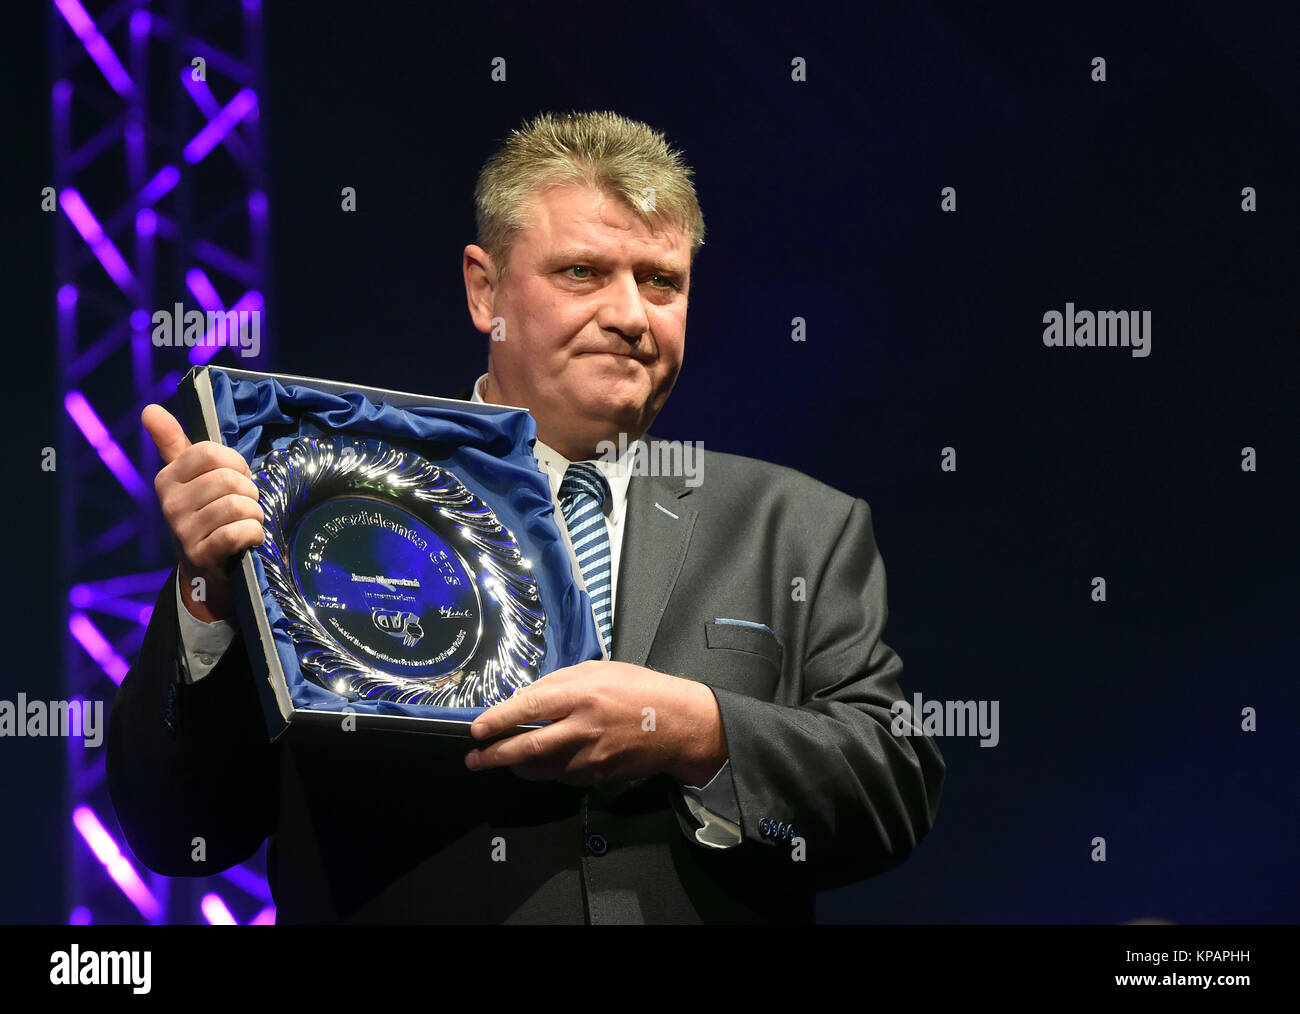 Jana Novotna 2015 >> Presidential Award Stock Photos & Presidential Award Stock Images - Alamy